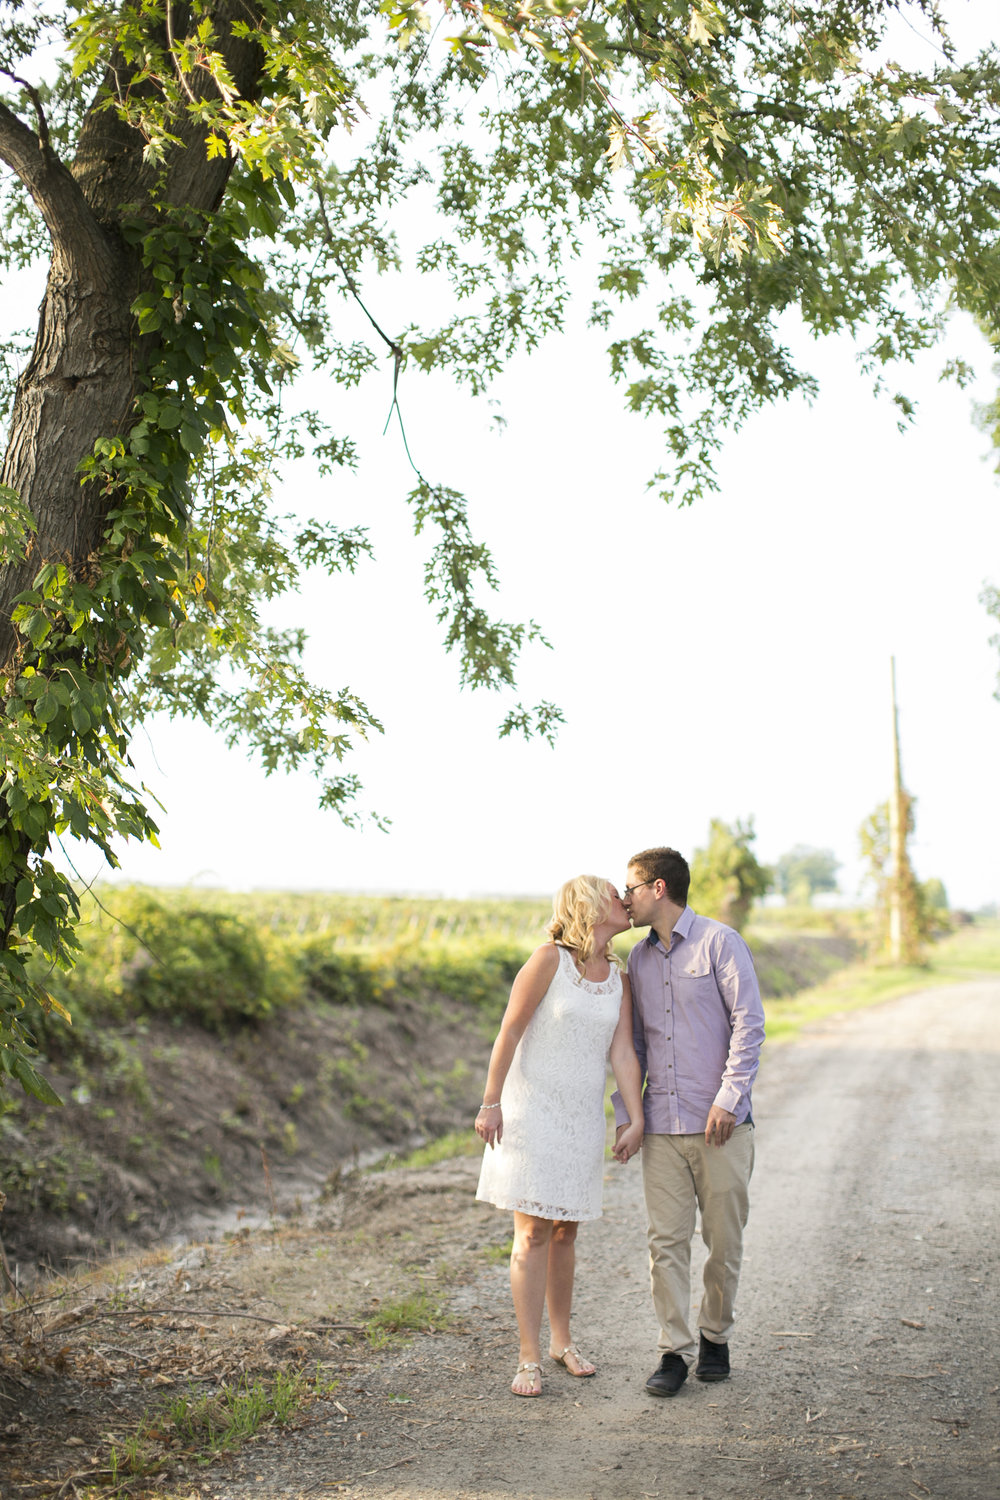 Niagara-on-the-Lake-Engagement-photos-by-Philosophy-Studios-001.JPG